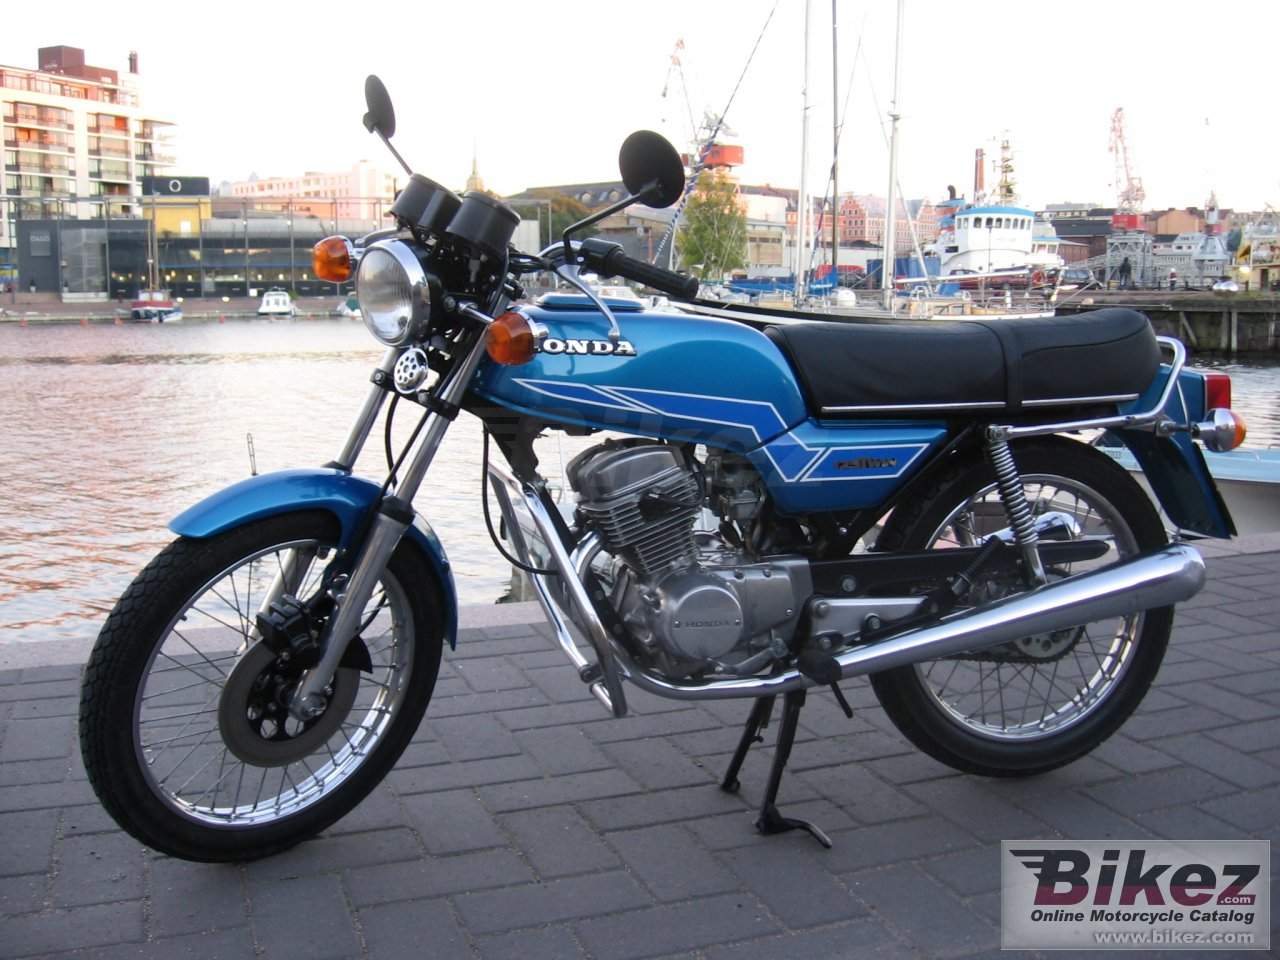 Big  cb 125 t picture and wallpaper from Bikez.com